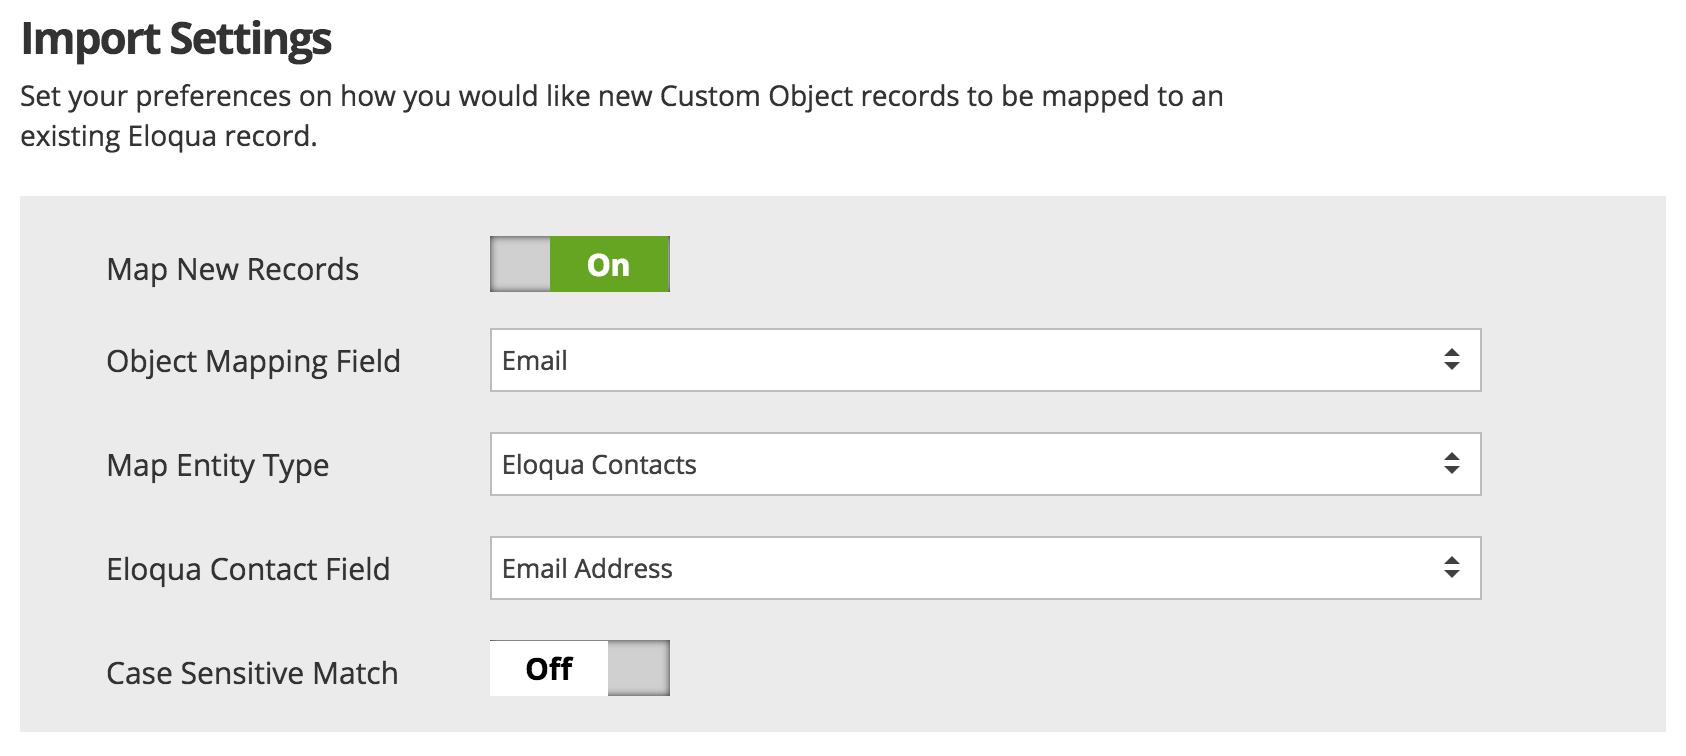 Saving Inbound Reply Messages